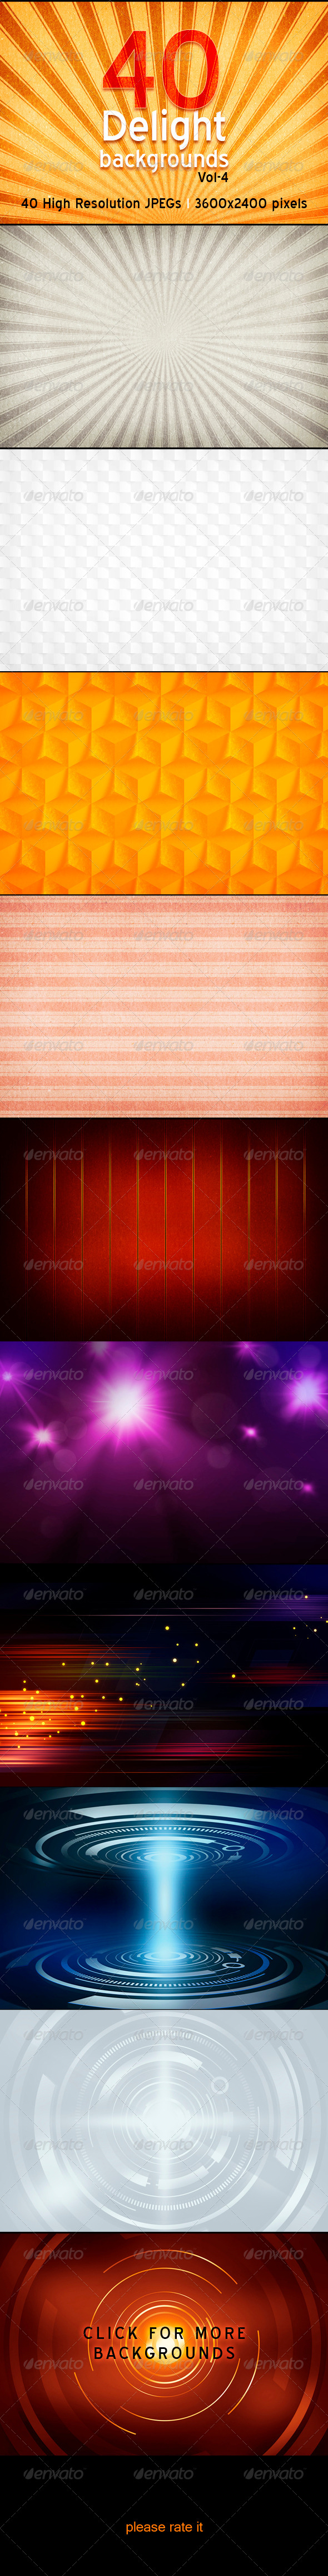 Delight Backgrounds_Vol-4 - Abstract Backgrounds